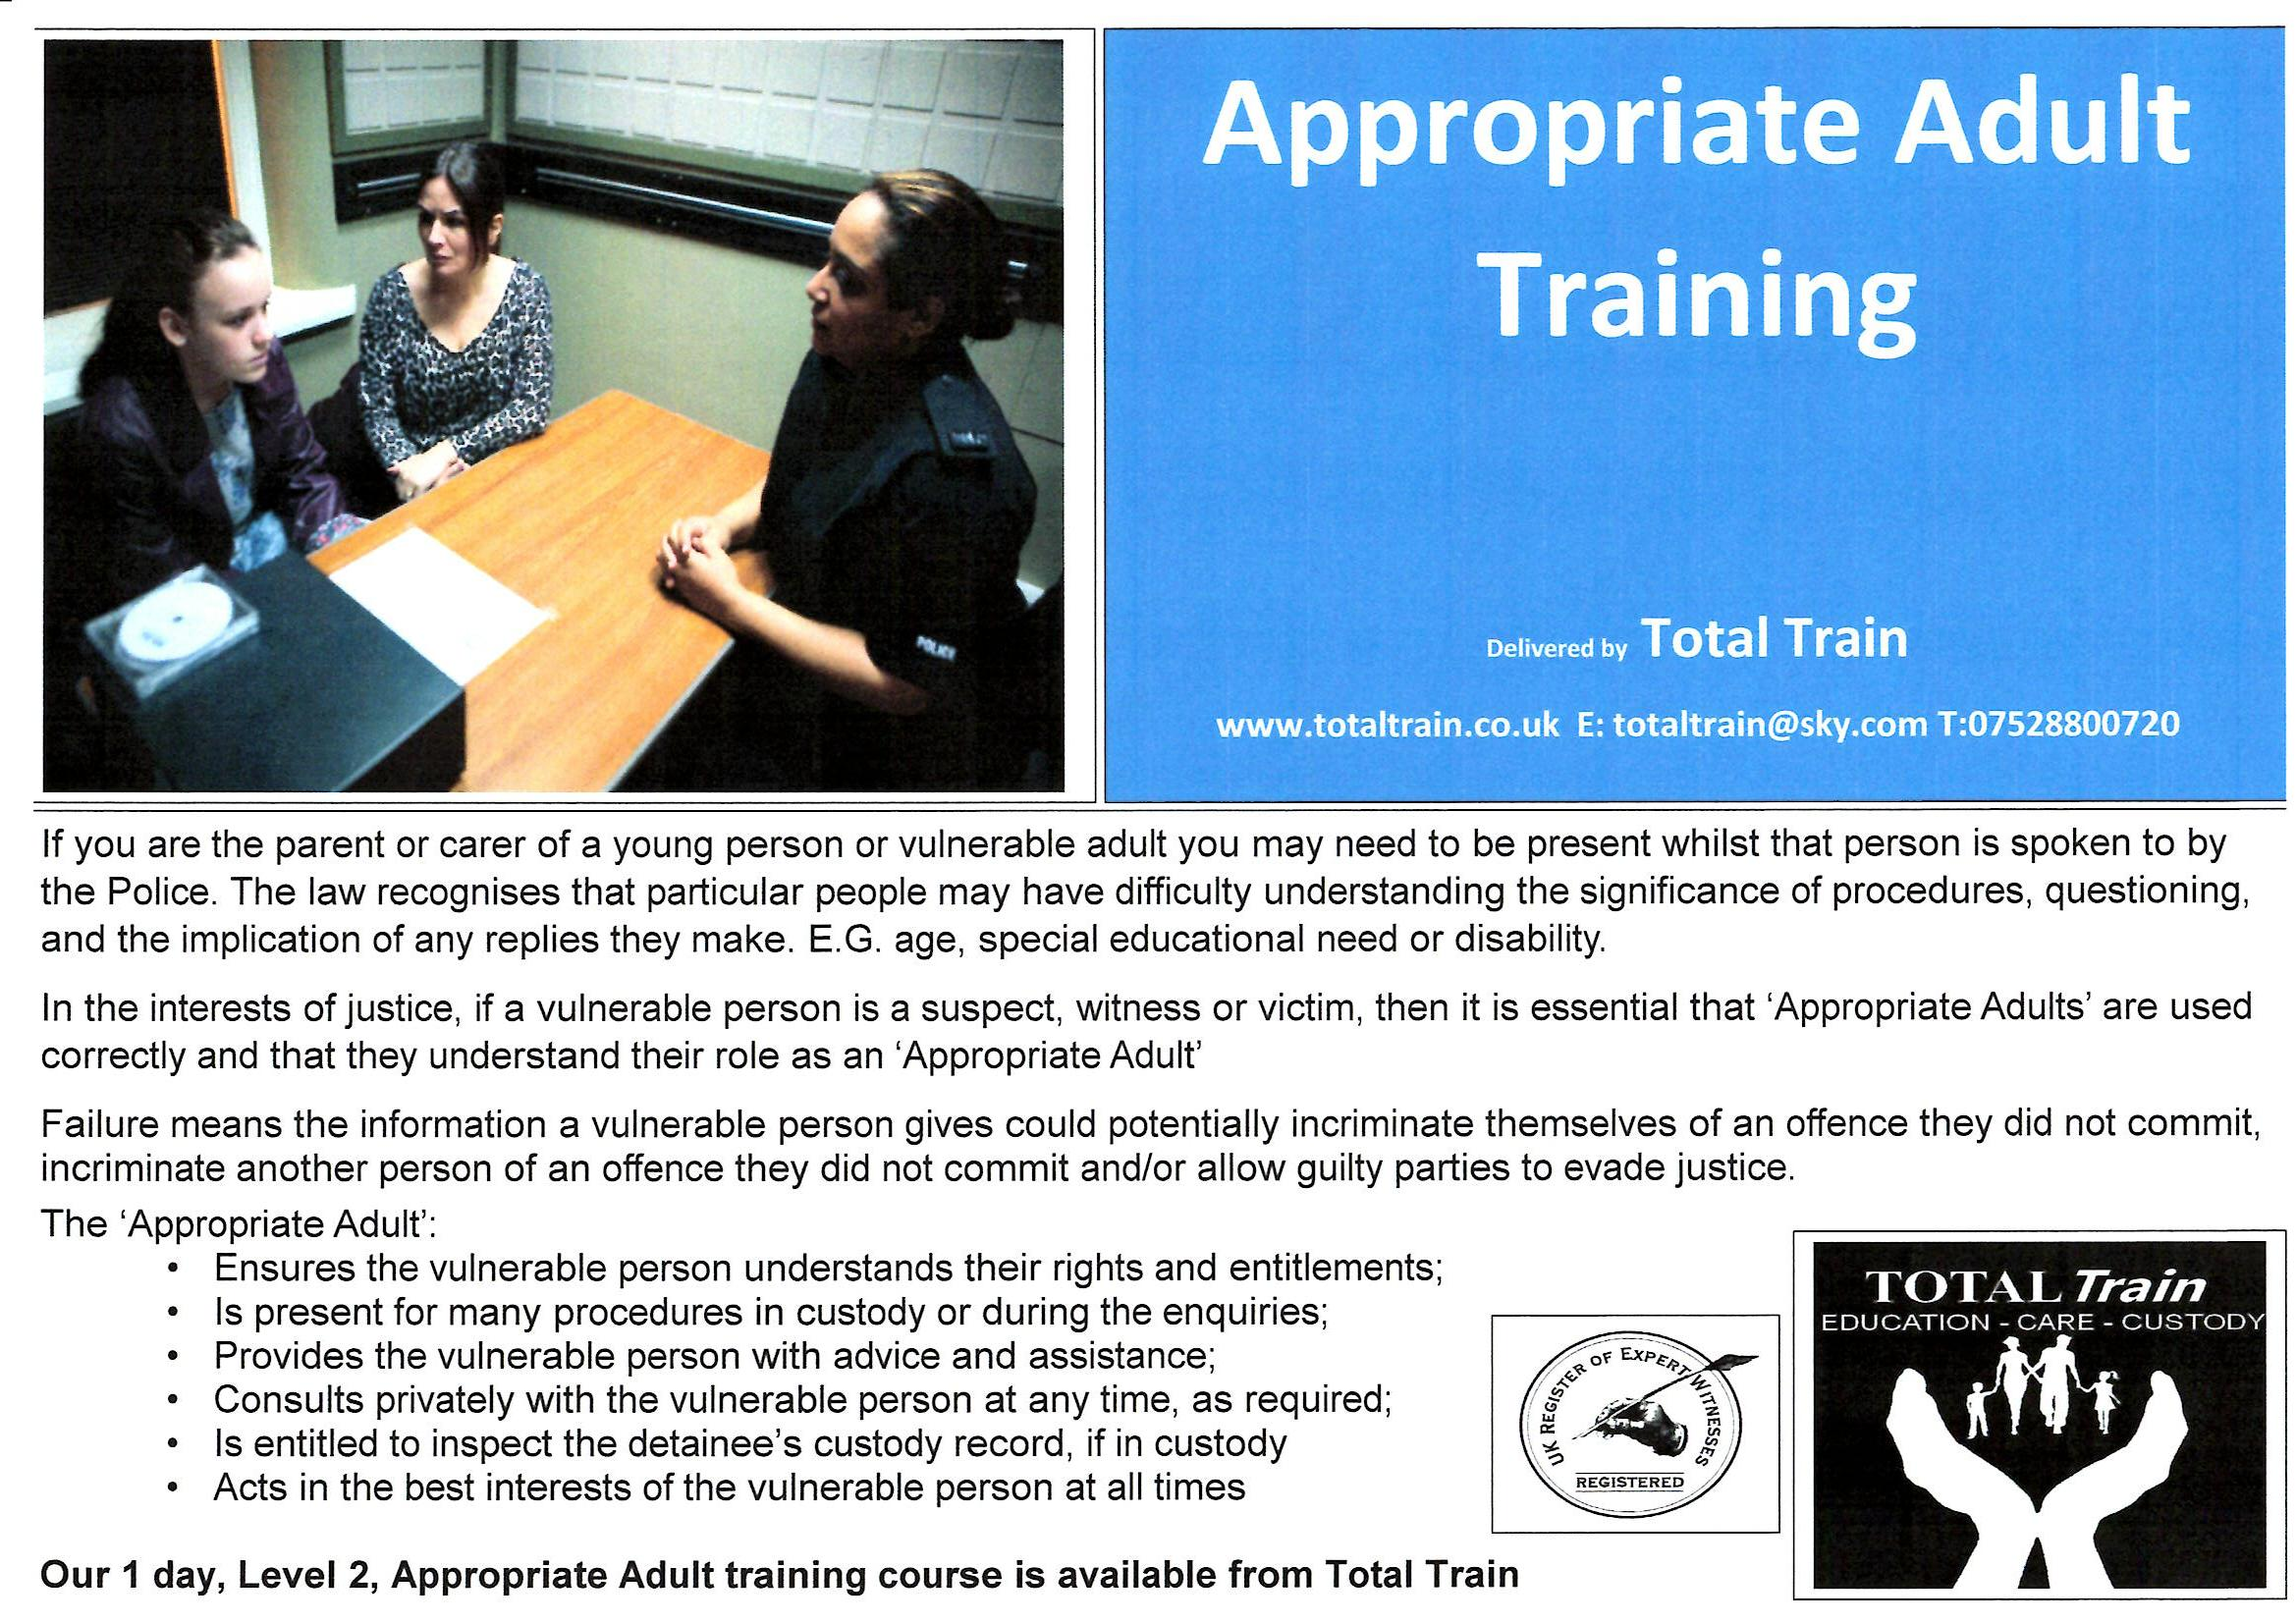 Appropriate Adult Training